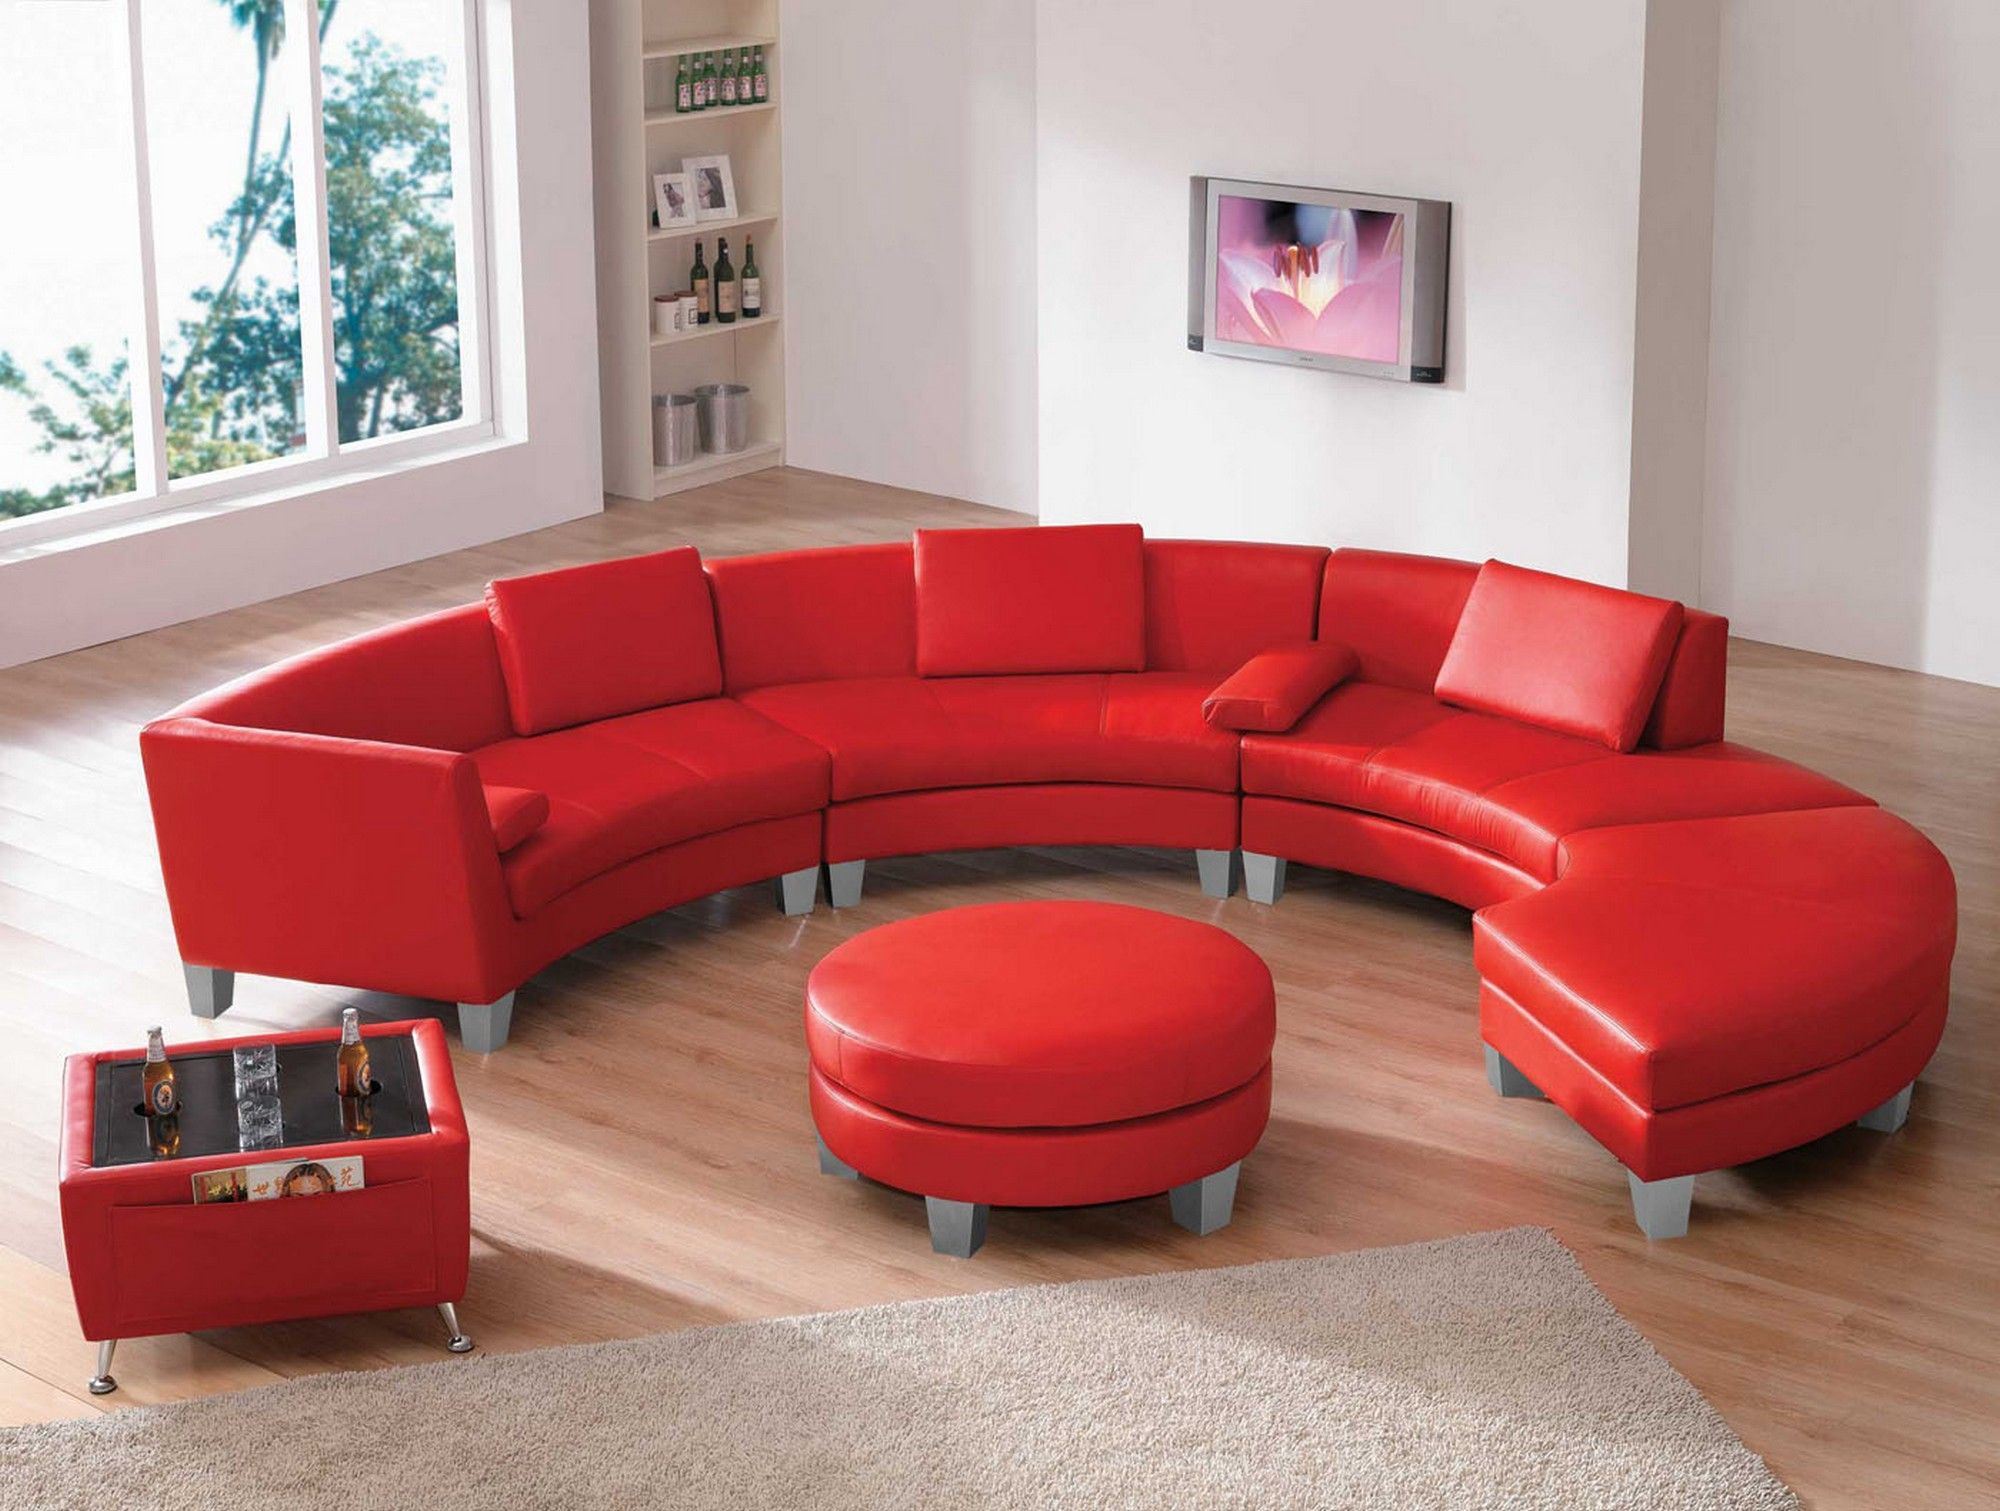 Furniture Living Room Curved Red Top Grain Leather Sectional Sofa With  Chaise And Round Ottoman Red Leather Couches